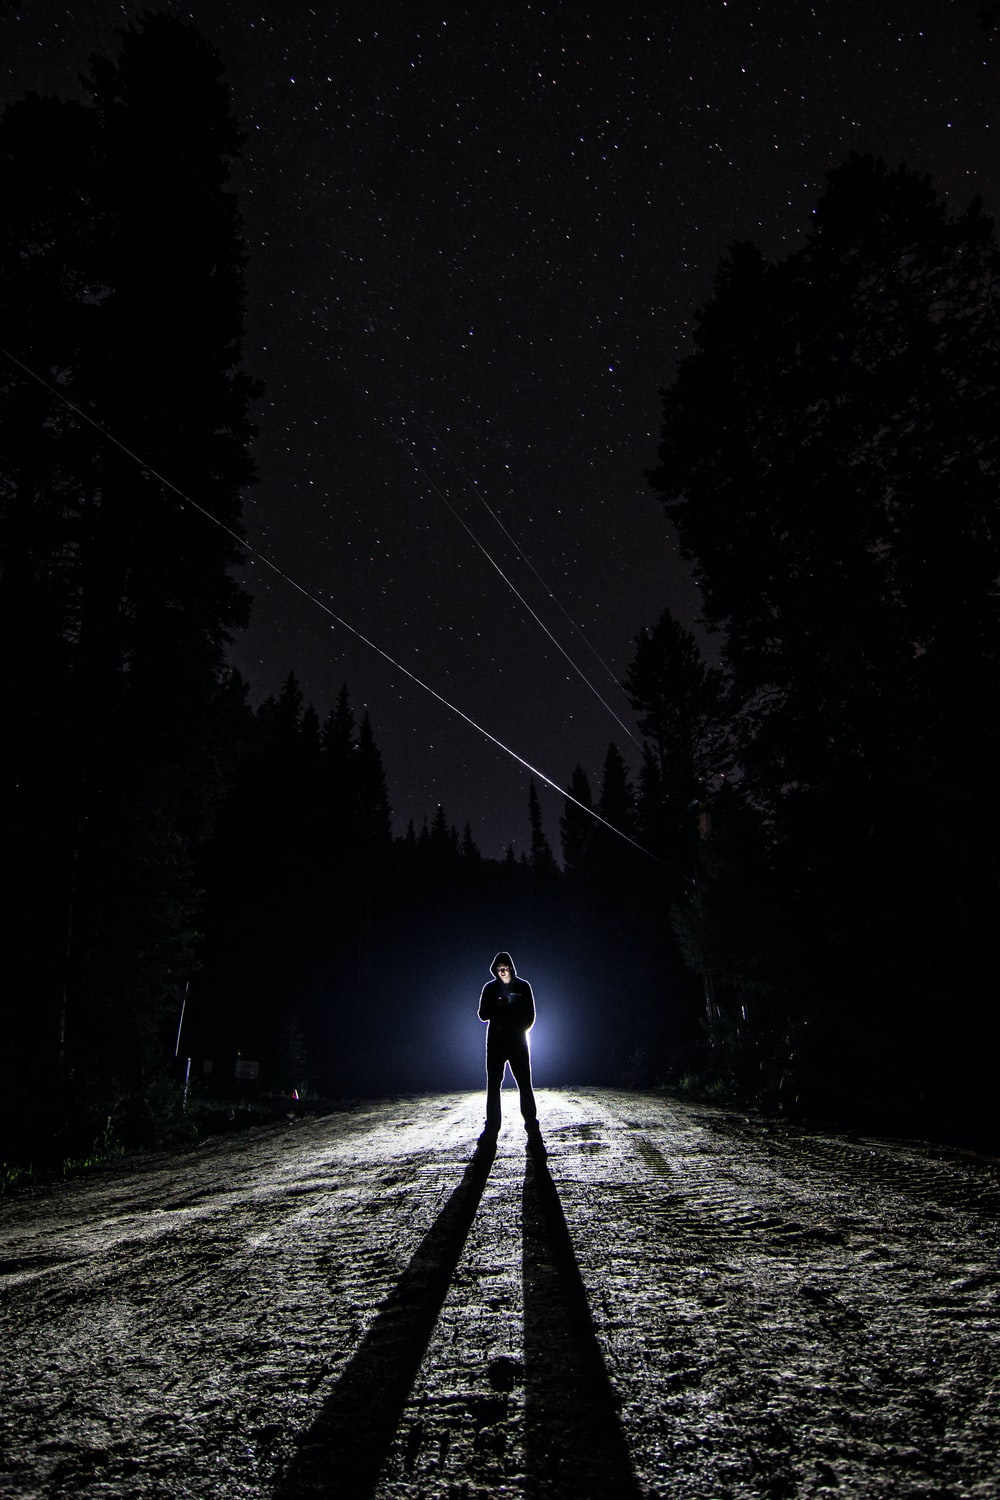 man standing on pathway during nighttime